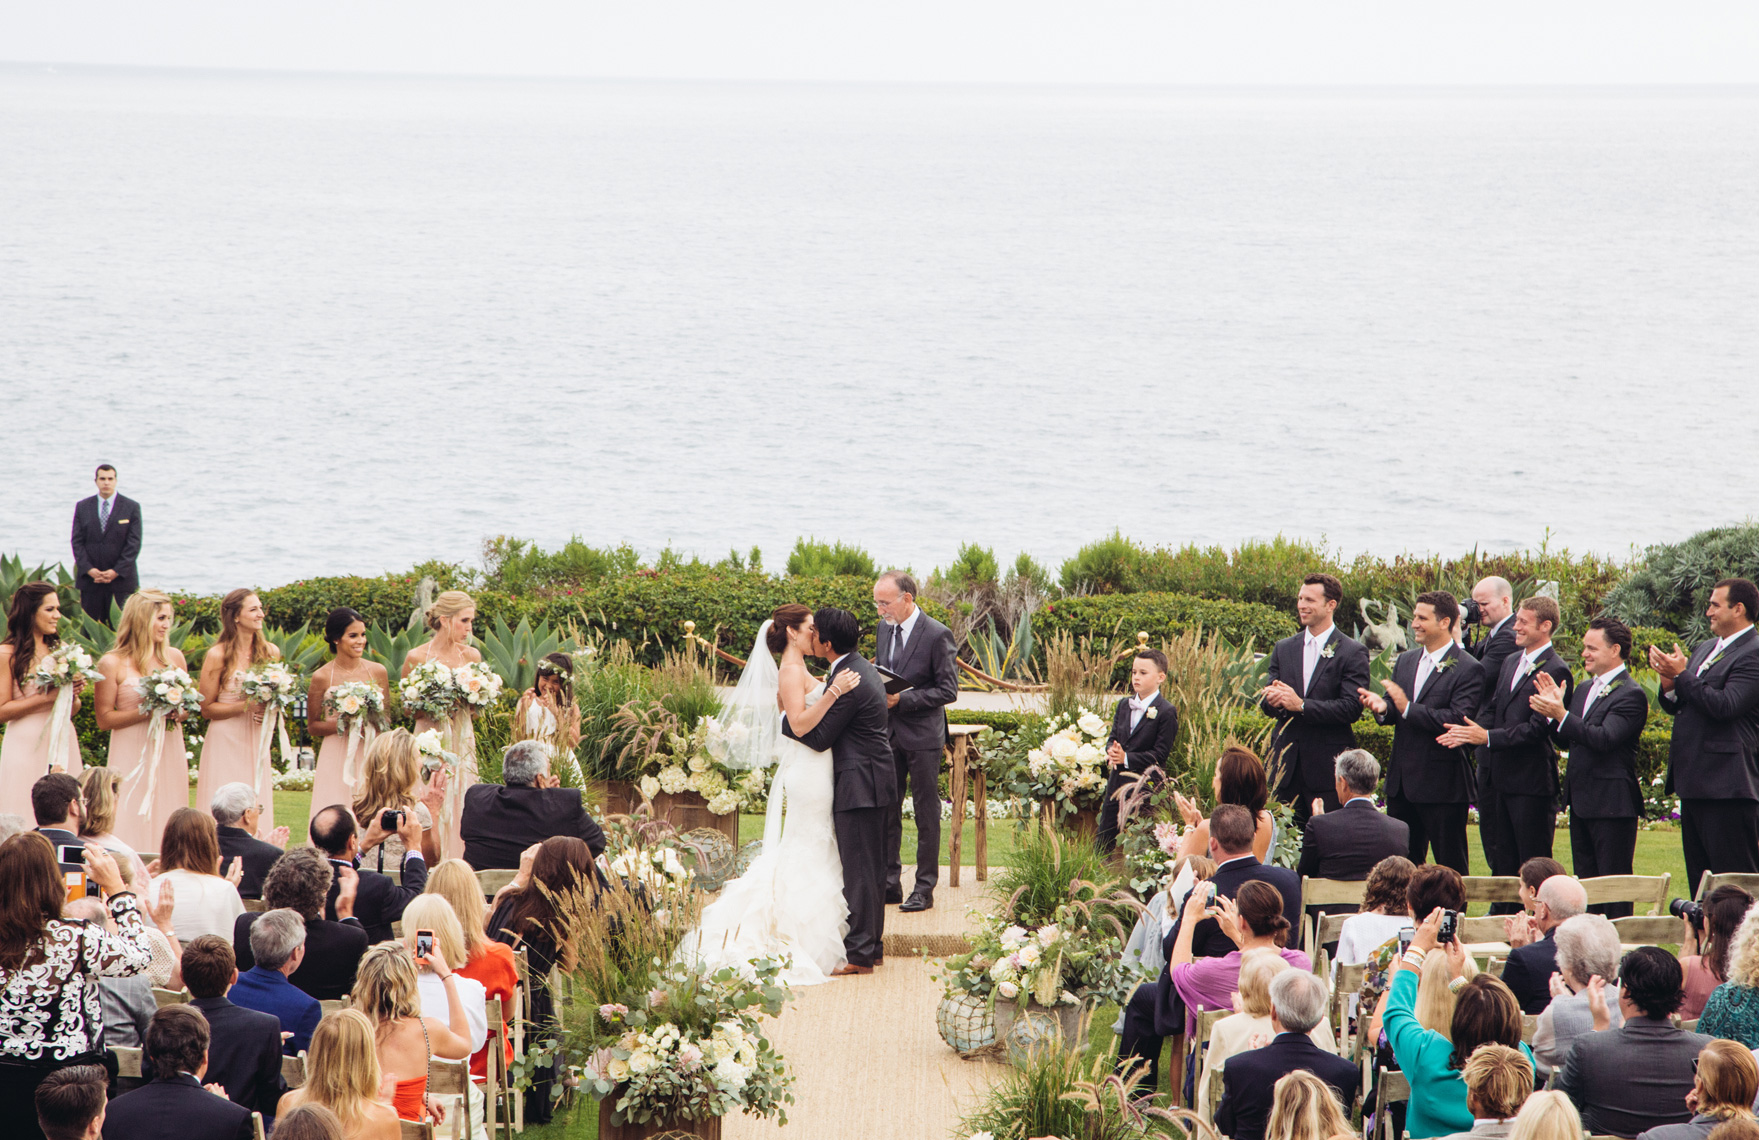 The wedding ceremony on the Pacific Lawn at Montage Resort, Laguna Beach.